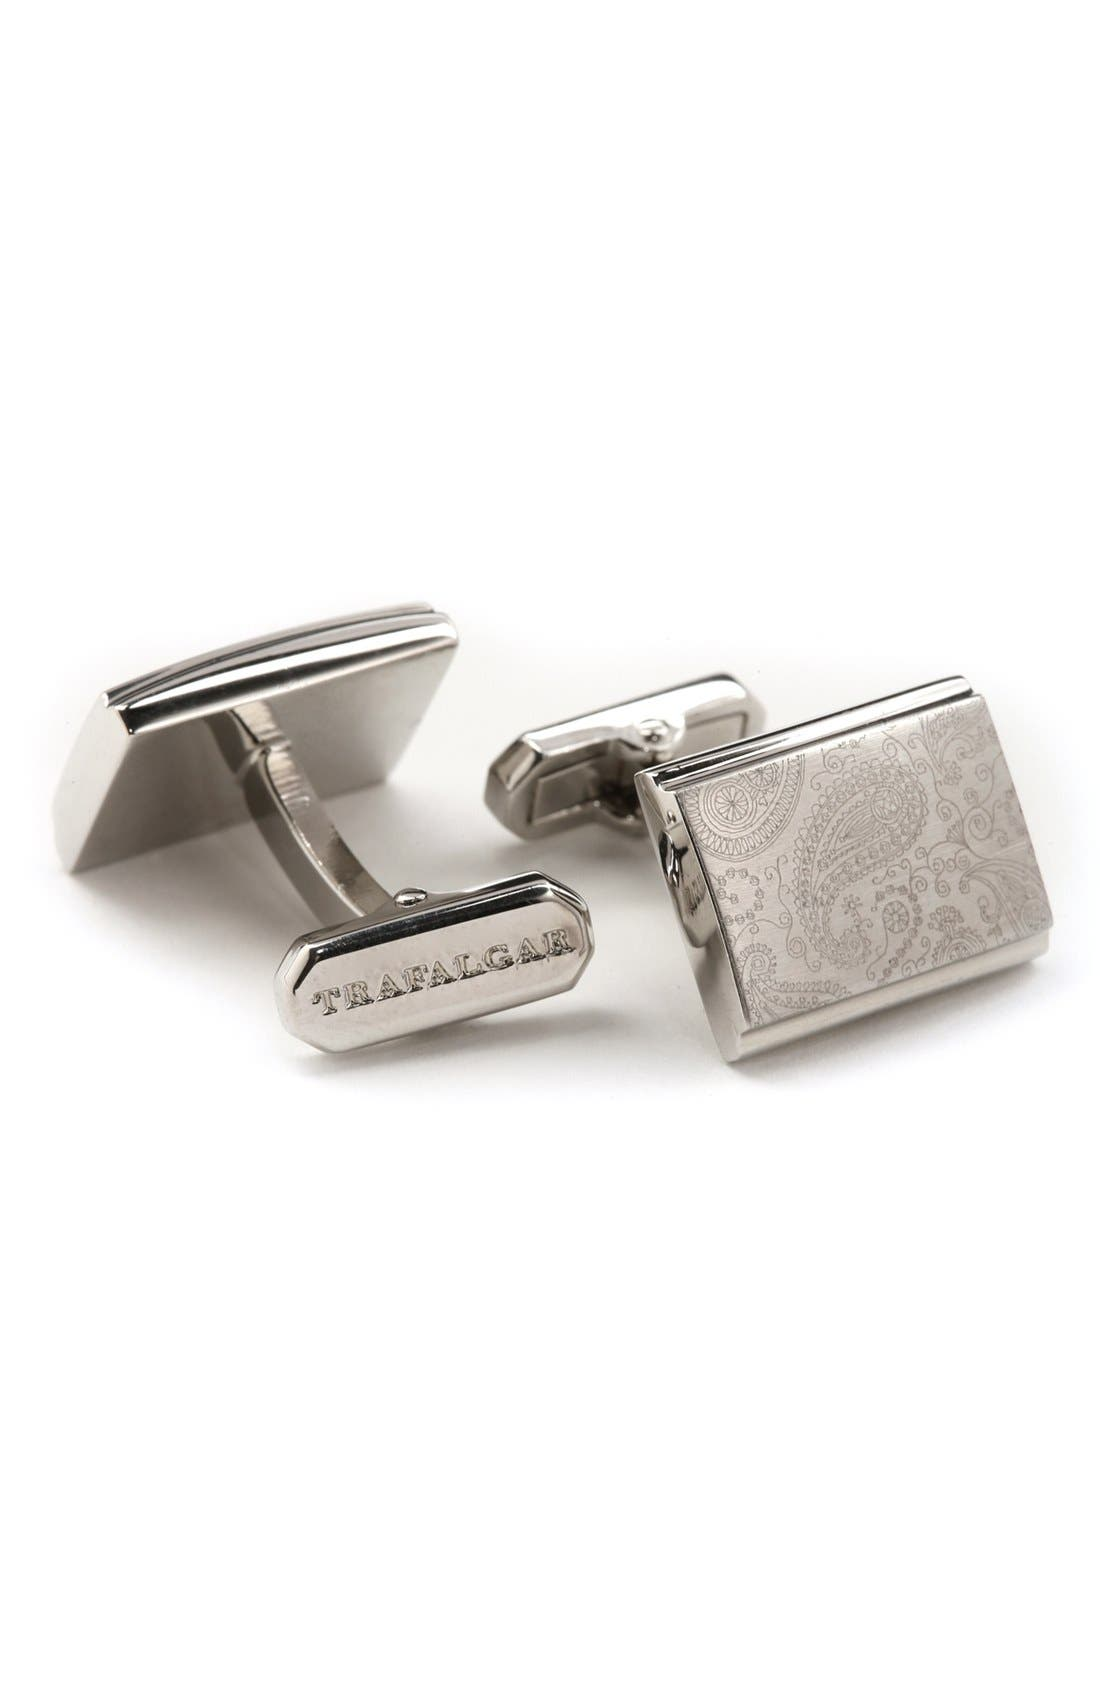 Alternate Image 1 Selected - Trafalgar 'Brentwood' Paisley Cuff Links